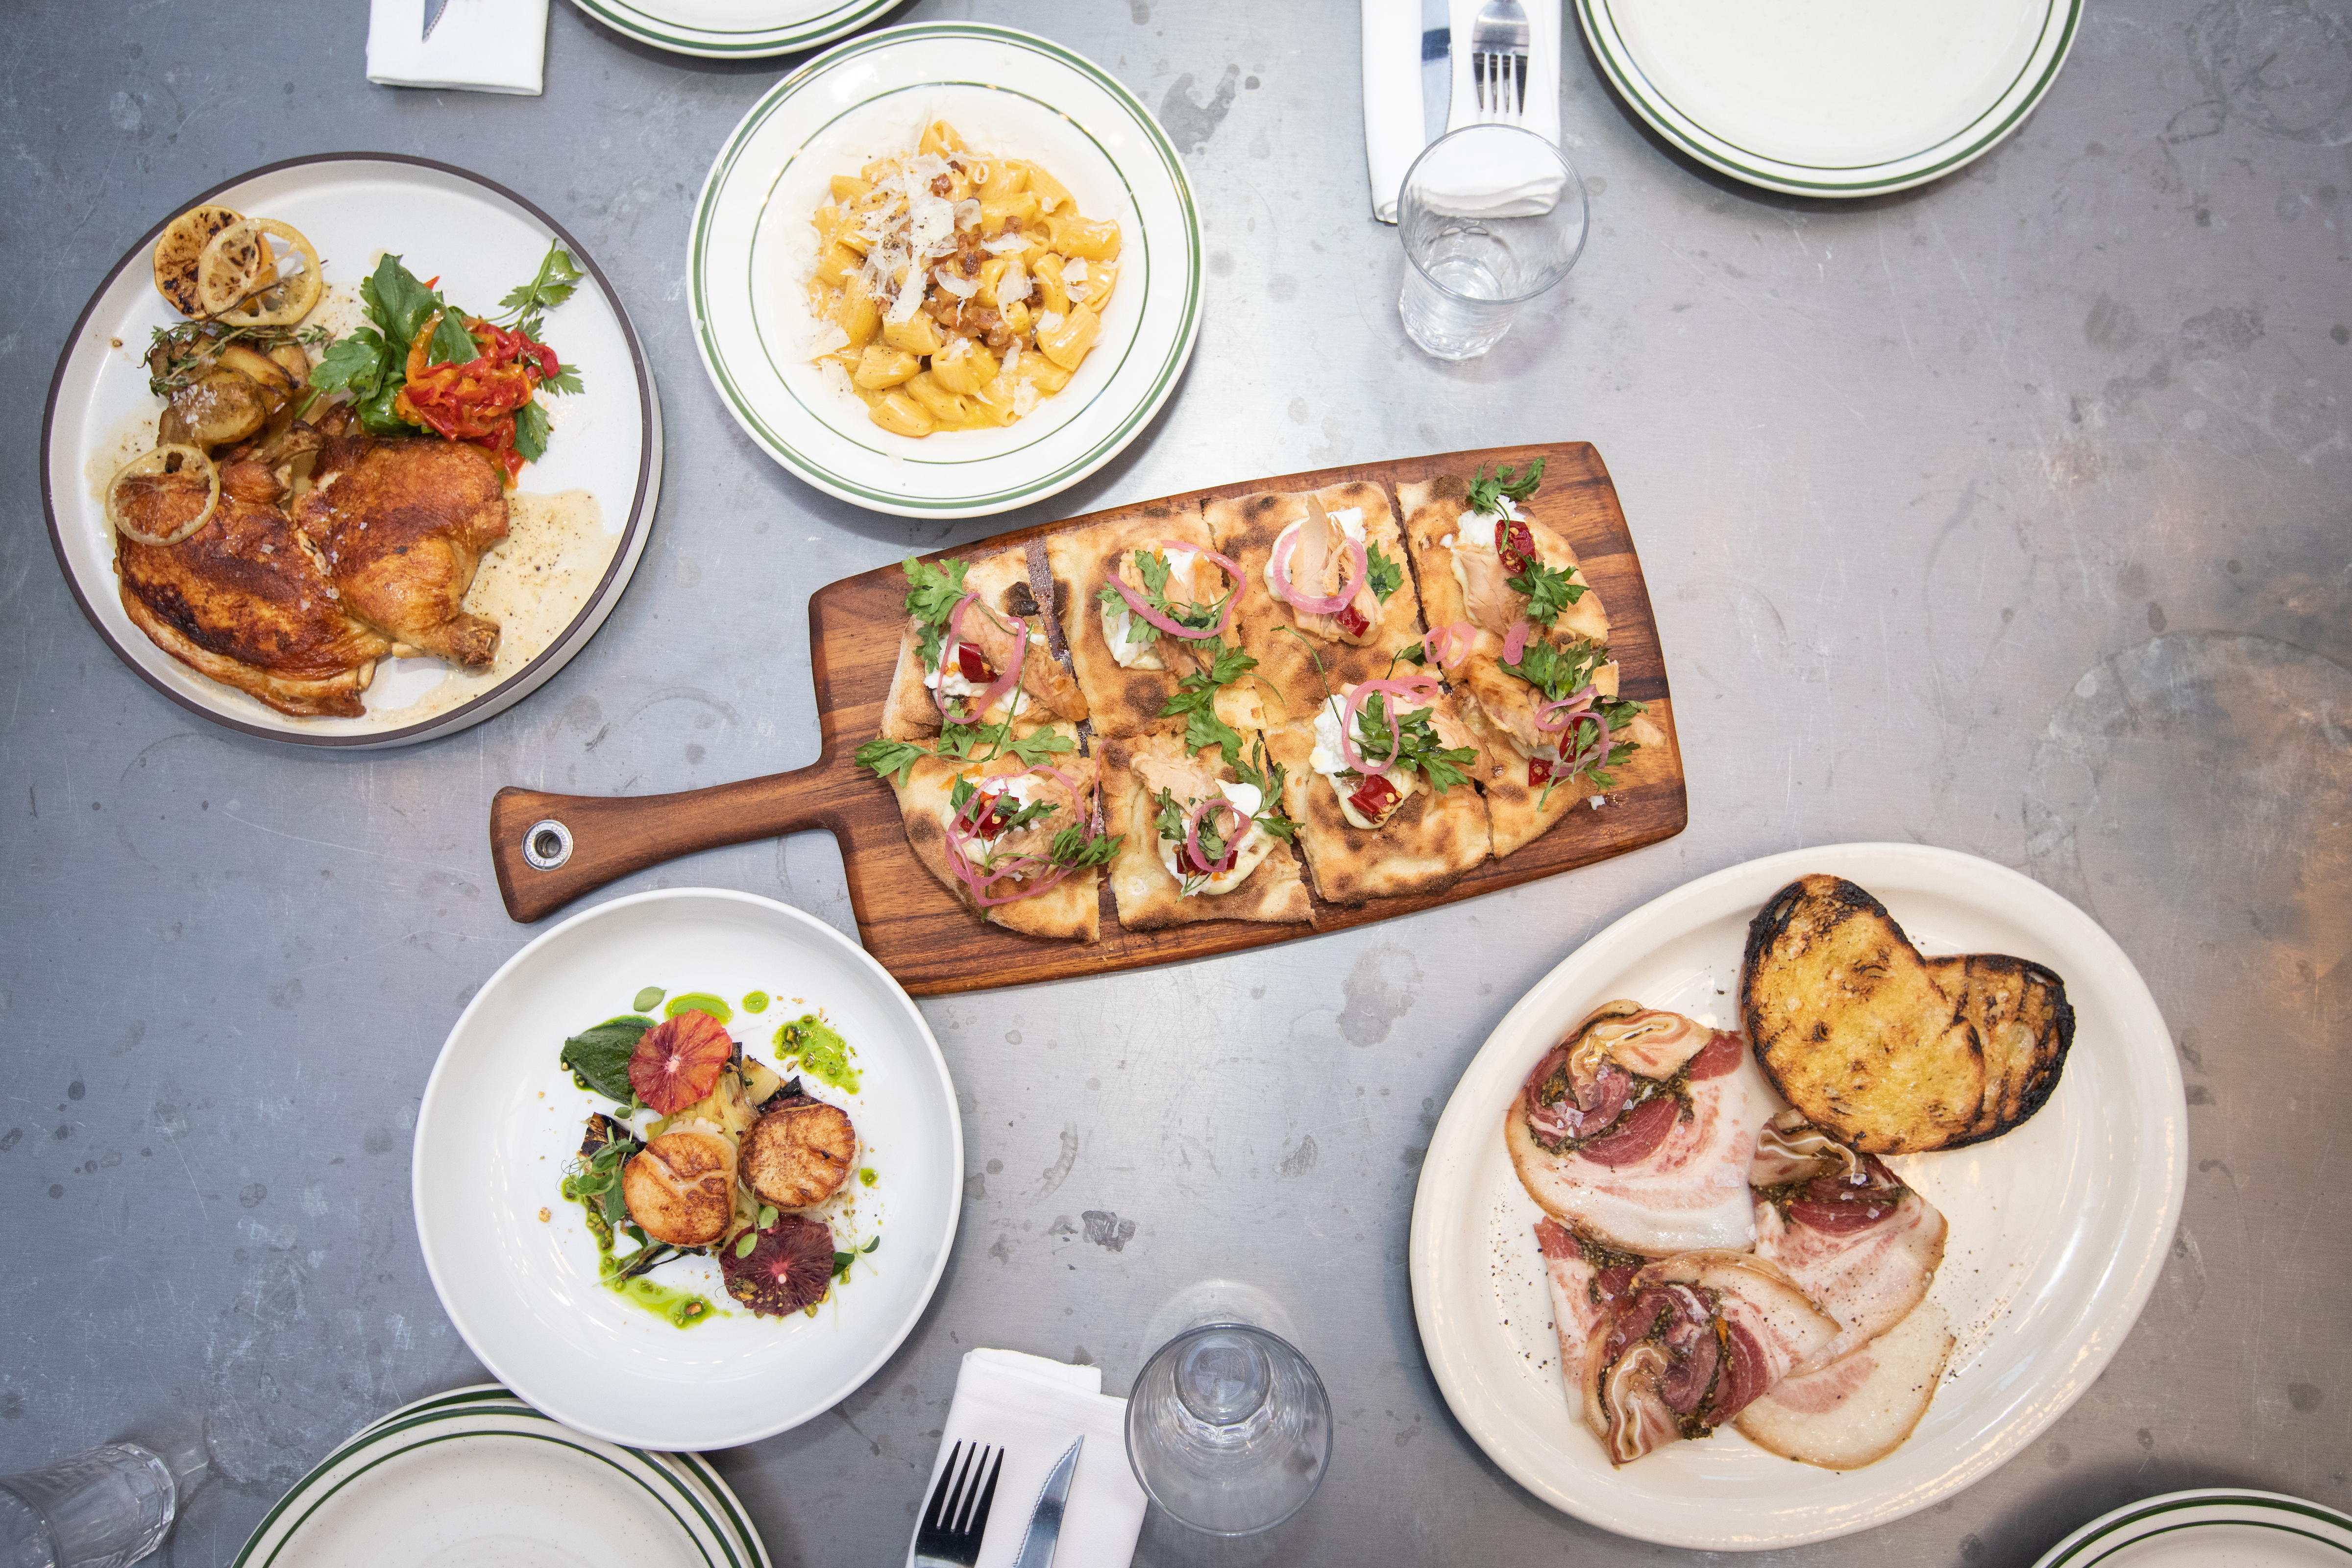 Four dishes laid out on a table top.